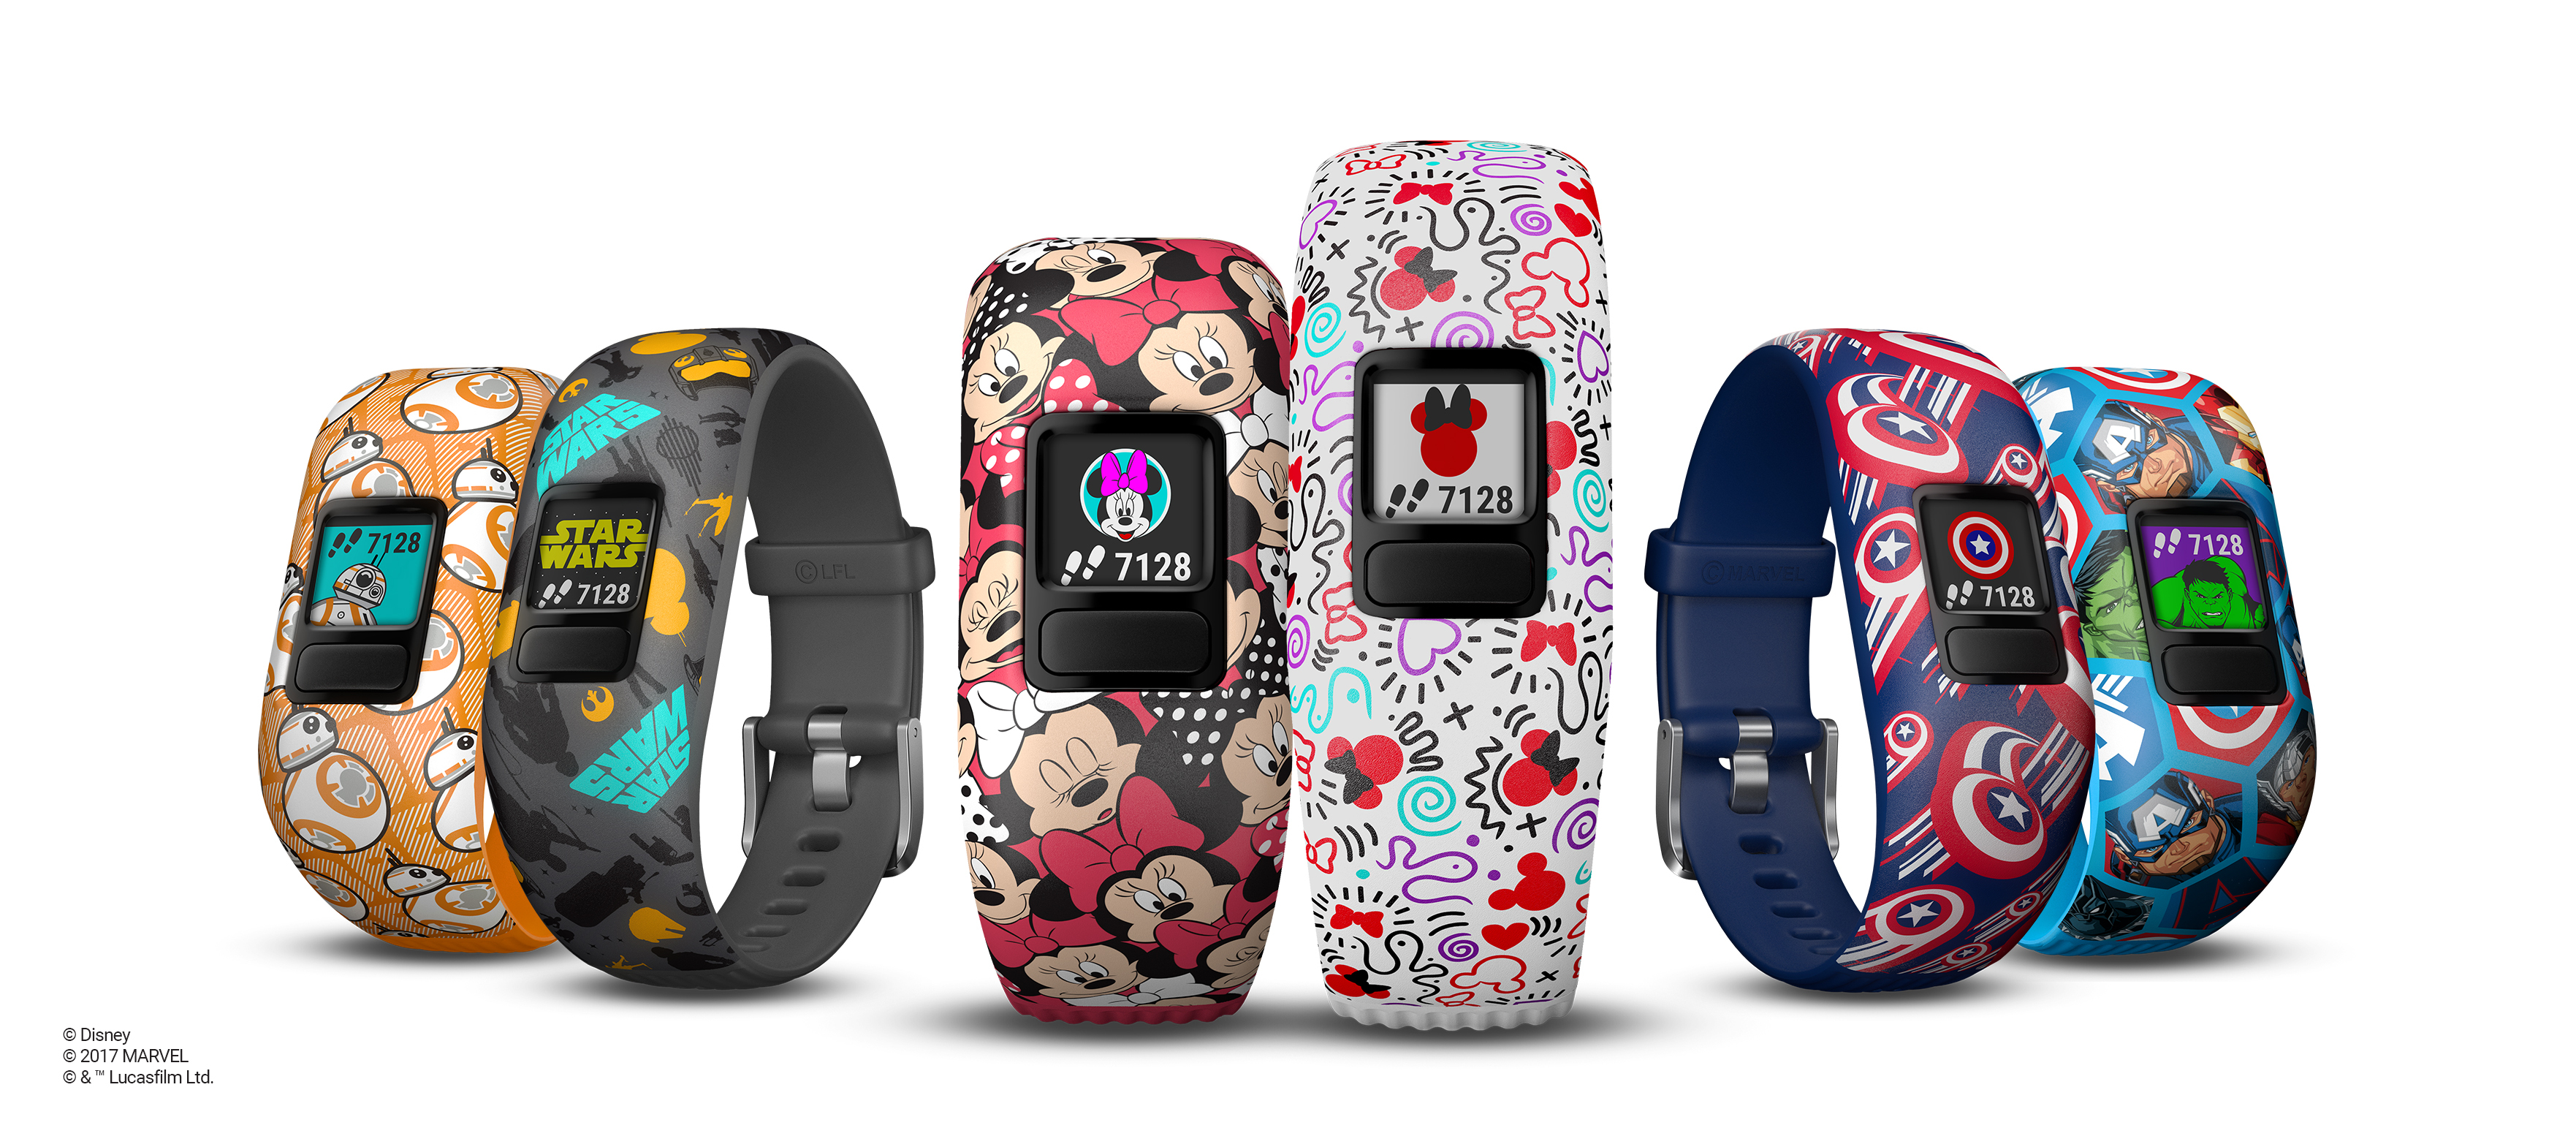 Garmin® and Disney Introduce the vívofit® jr. 2 Activity Tracker for Kids Featuring Disney, Star Wars and Marvel